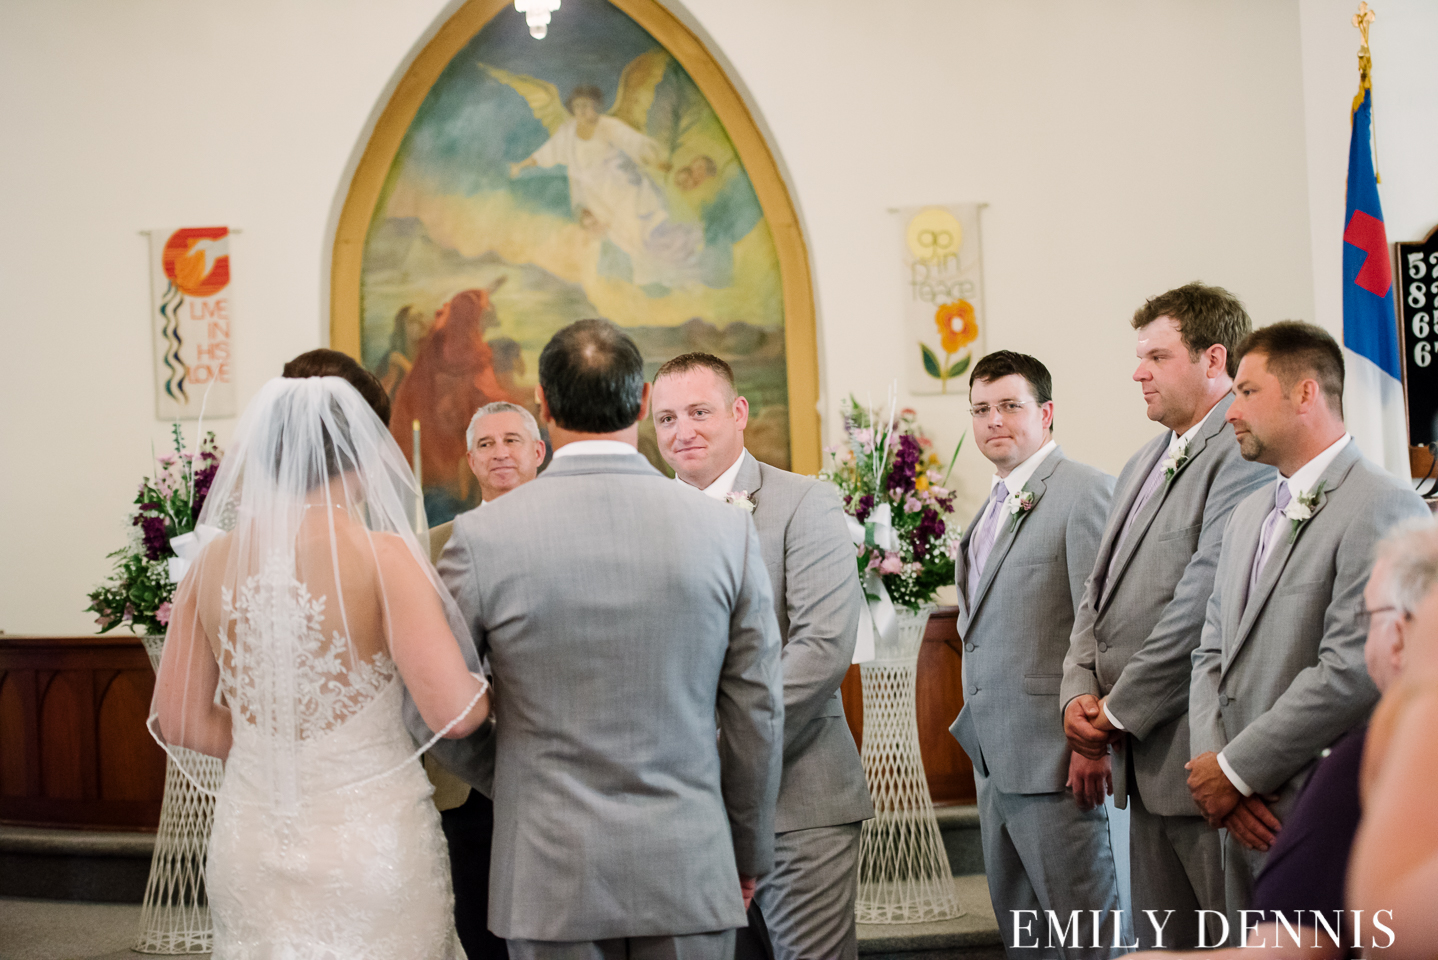 EMILY_DENNIS_PHOTOGRAPHY-65